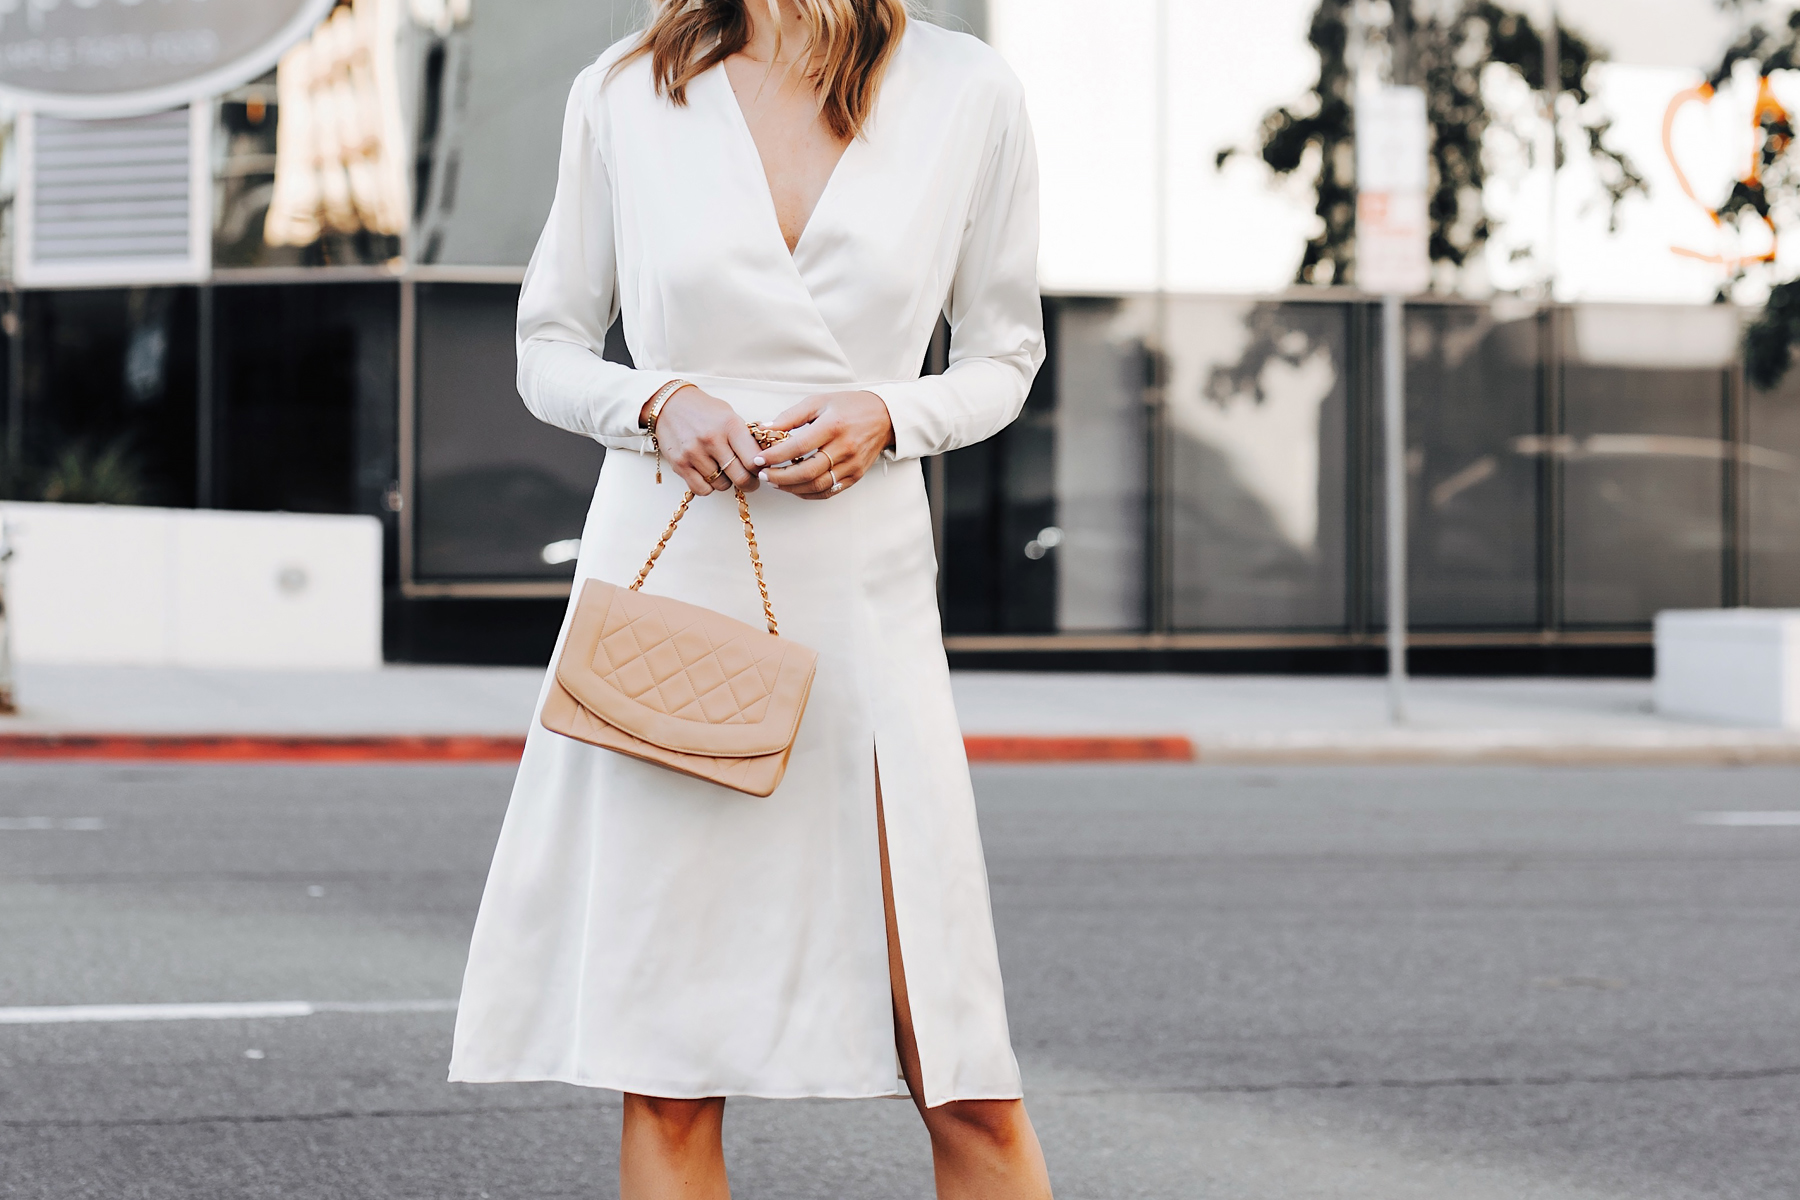 Woman Wearing Tommy Hilfiger White Wrap Dress Chanel Beige Diana Handbag Fashion Jackson San Diego Fashion Blogger Street Style